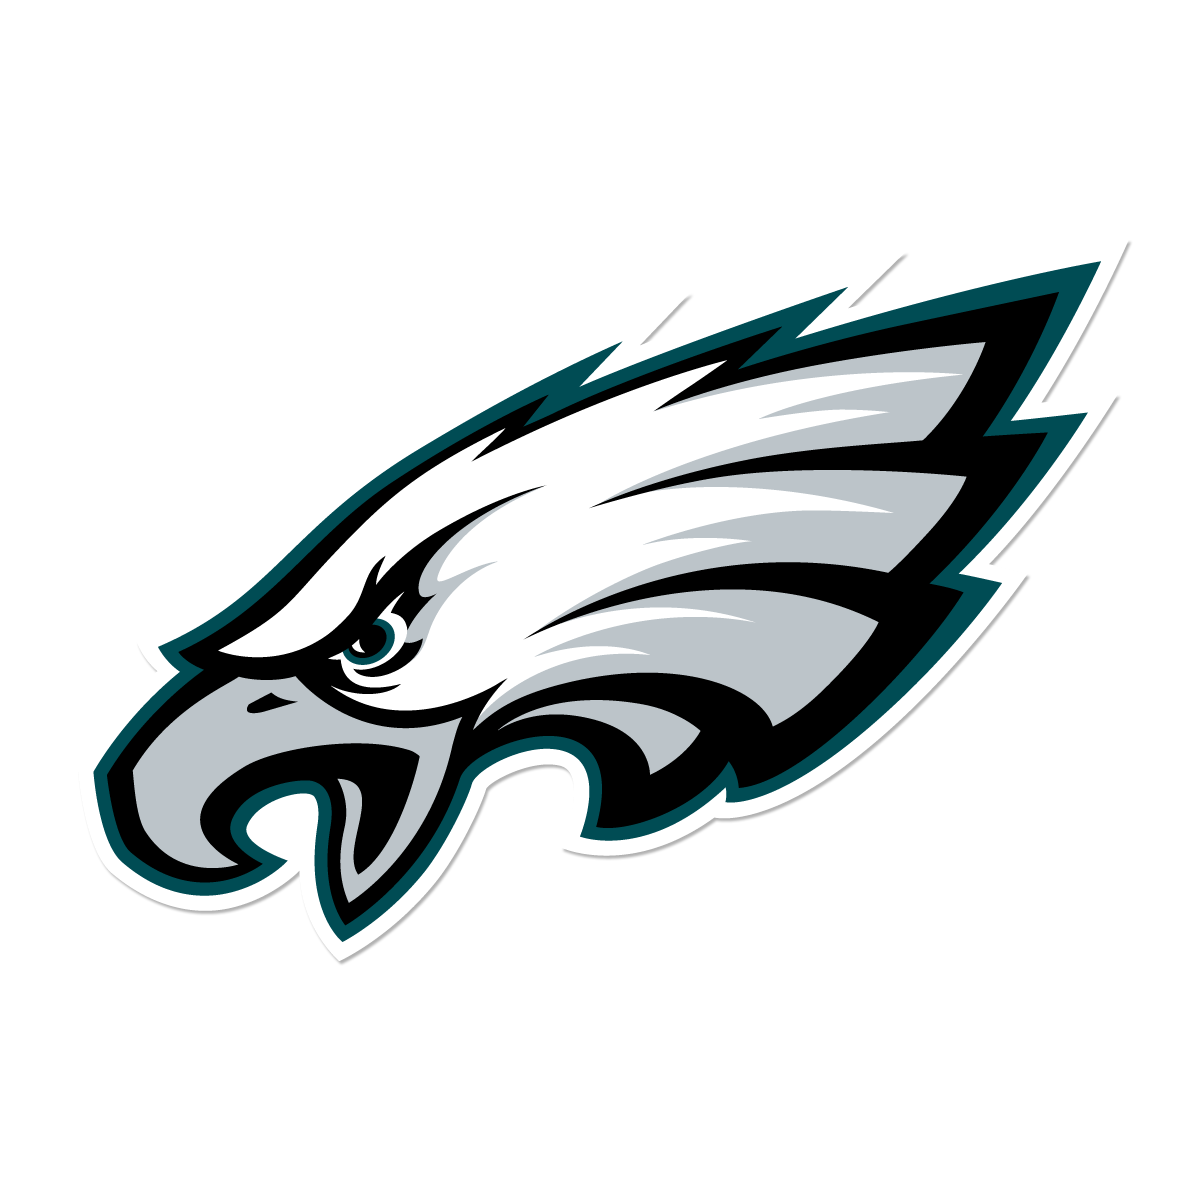 svg black and white library Clip philadelphia art. Eagles logo group with